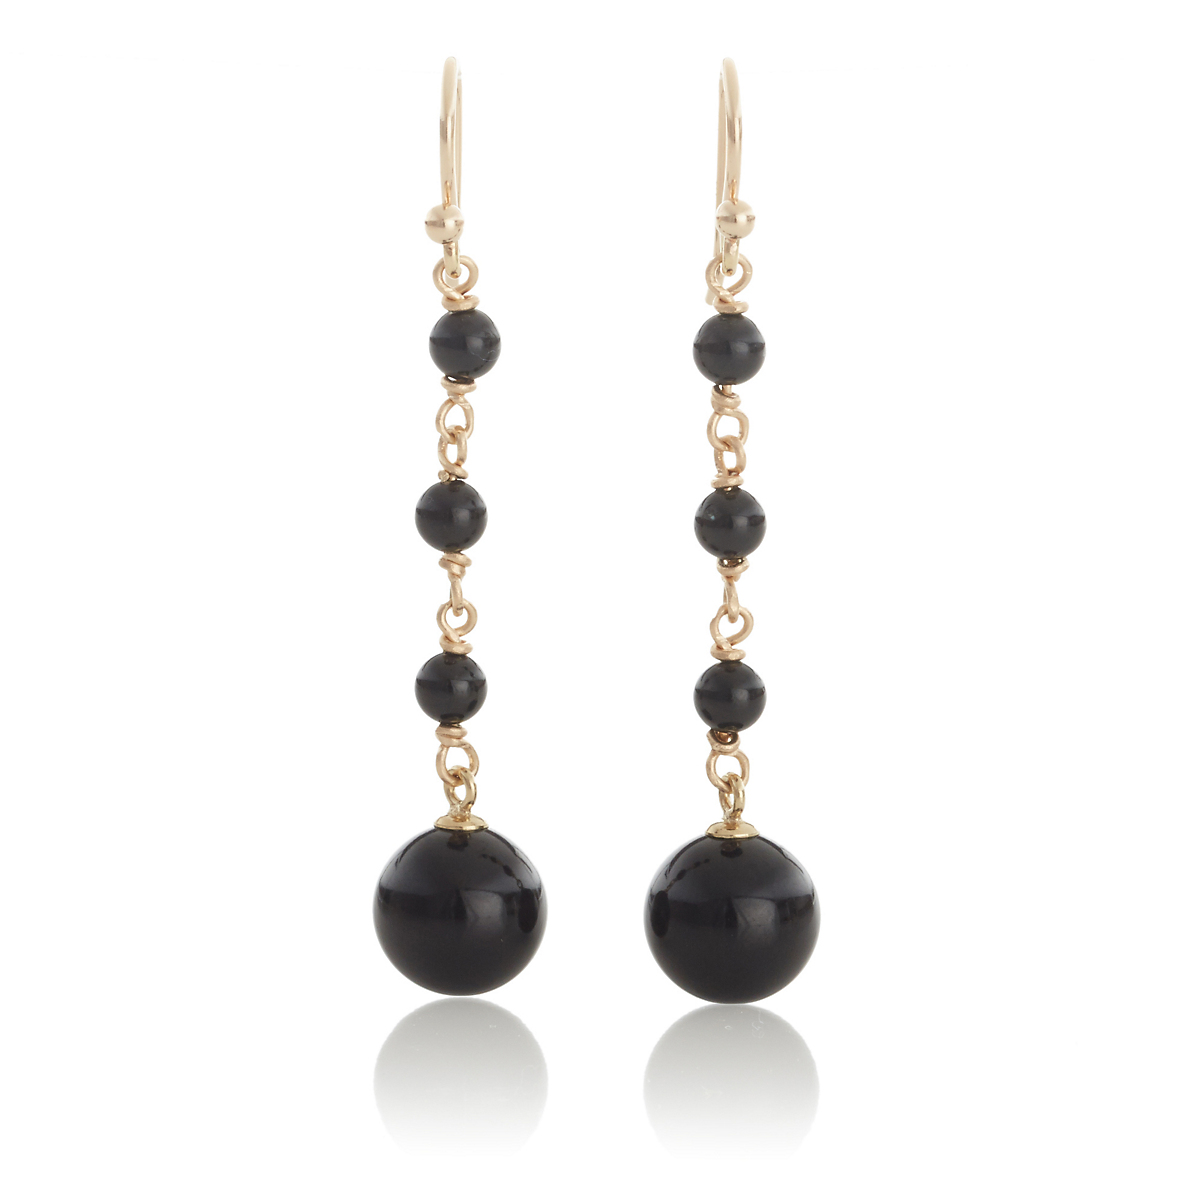 Gump's Black Nephrite Jade Bead Long Drop Earrings